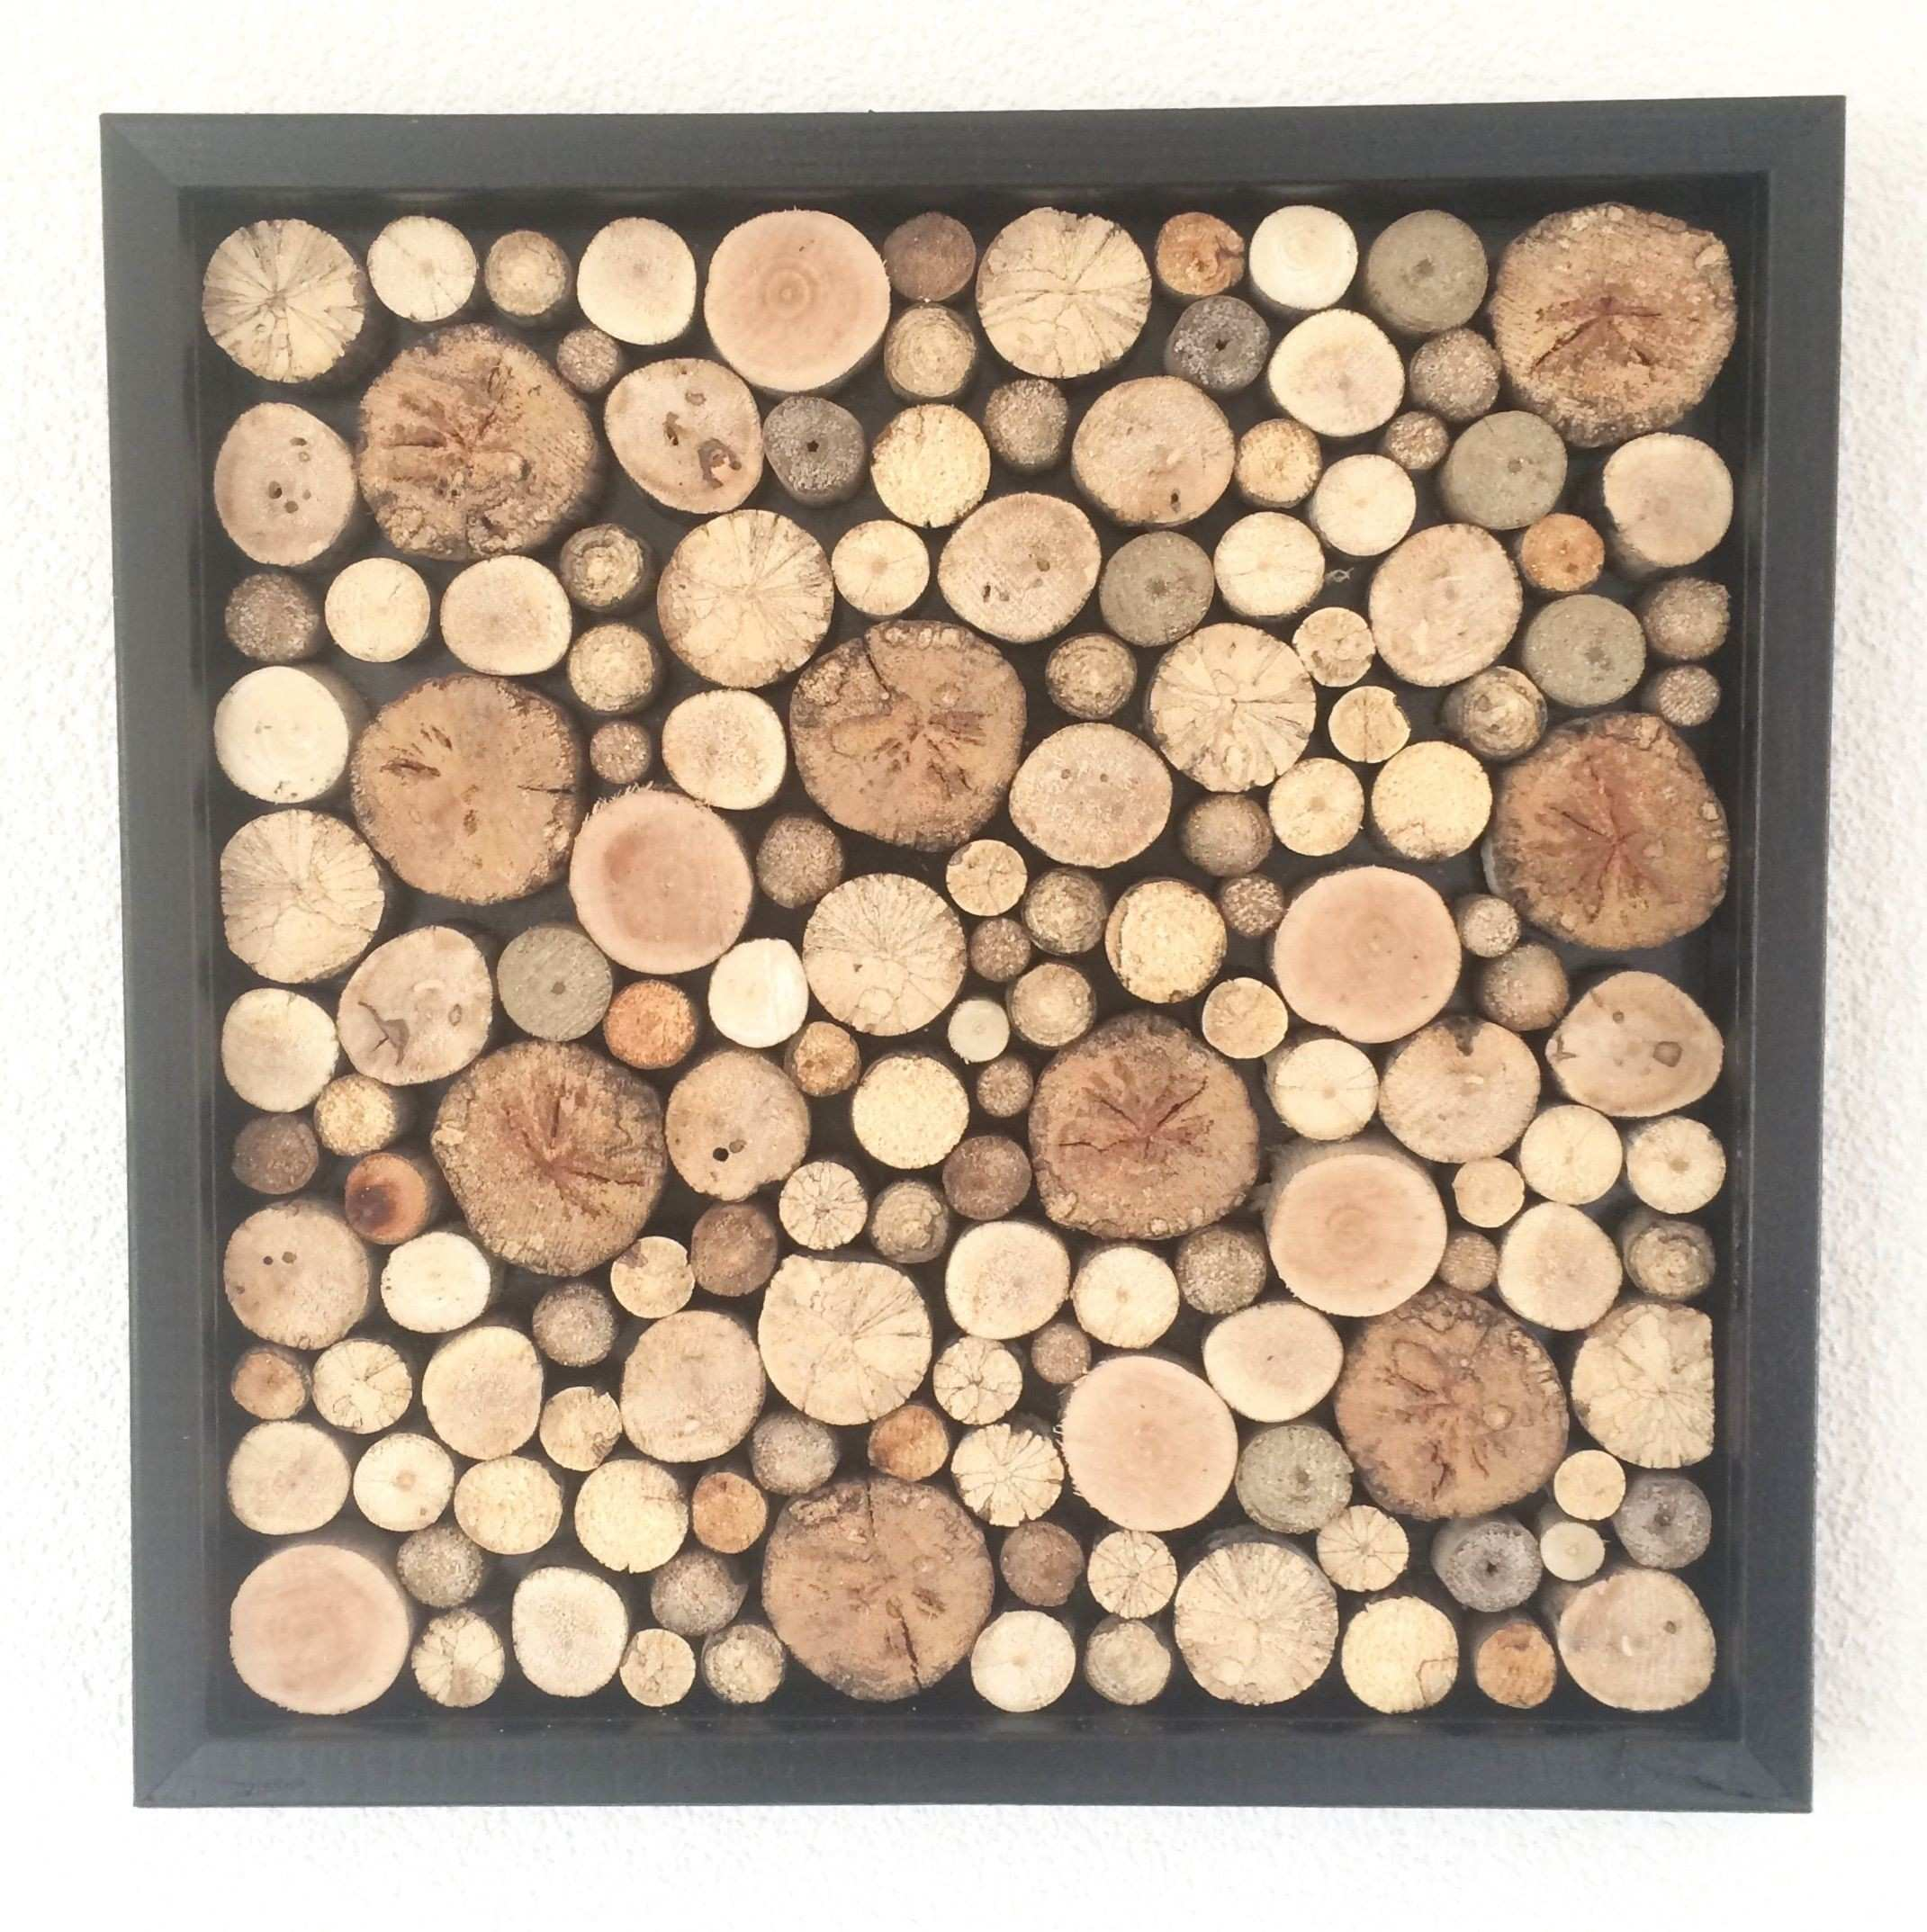 Rustic Wood Slices Wall Art 40 cm x 40 cm Could do this with